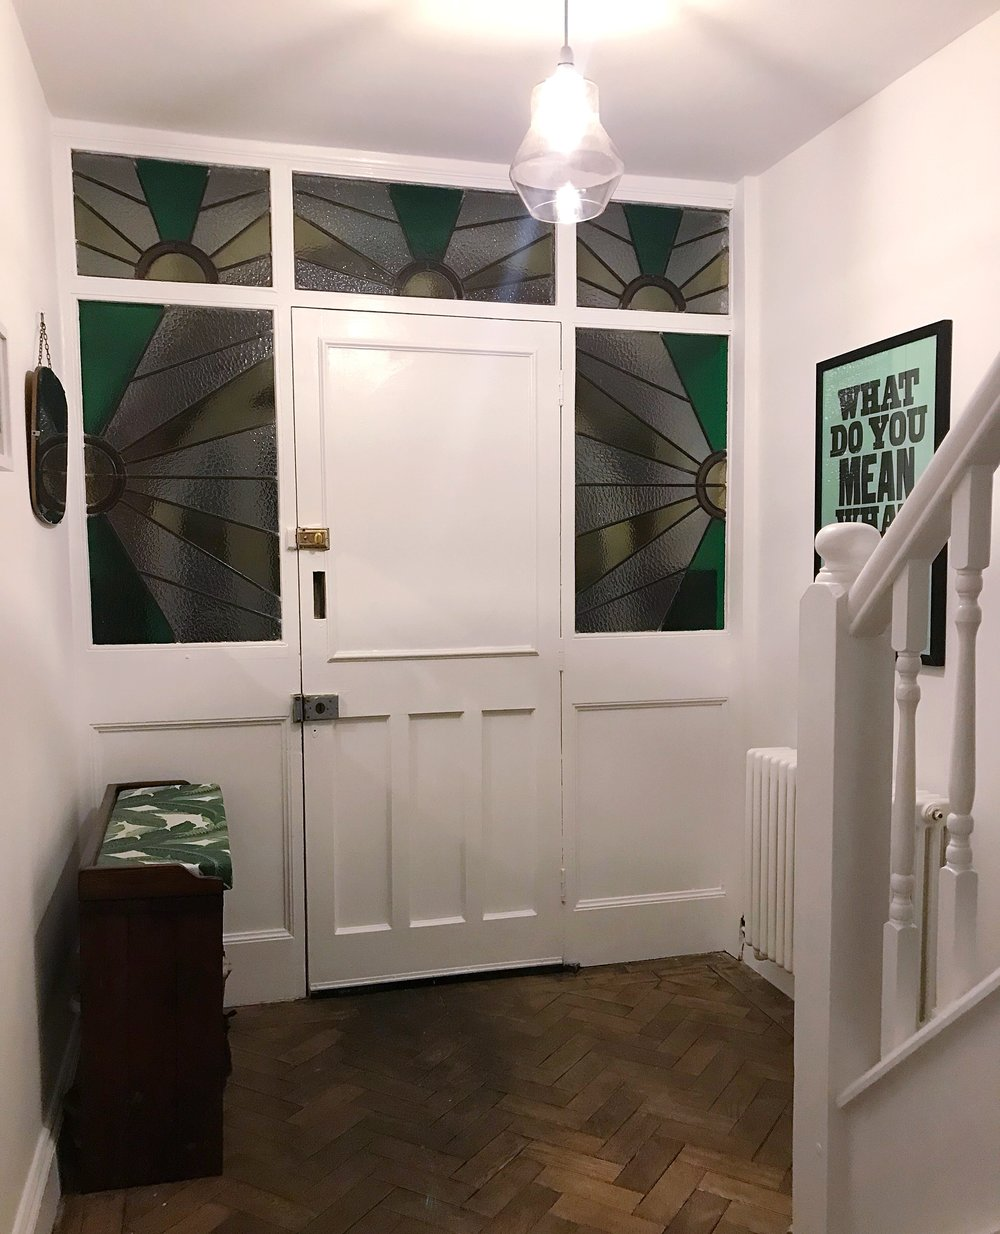 home-decor-style-theinkcloset-blog-interior-design-1930s-renovation-hallway.jpg